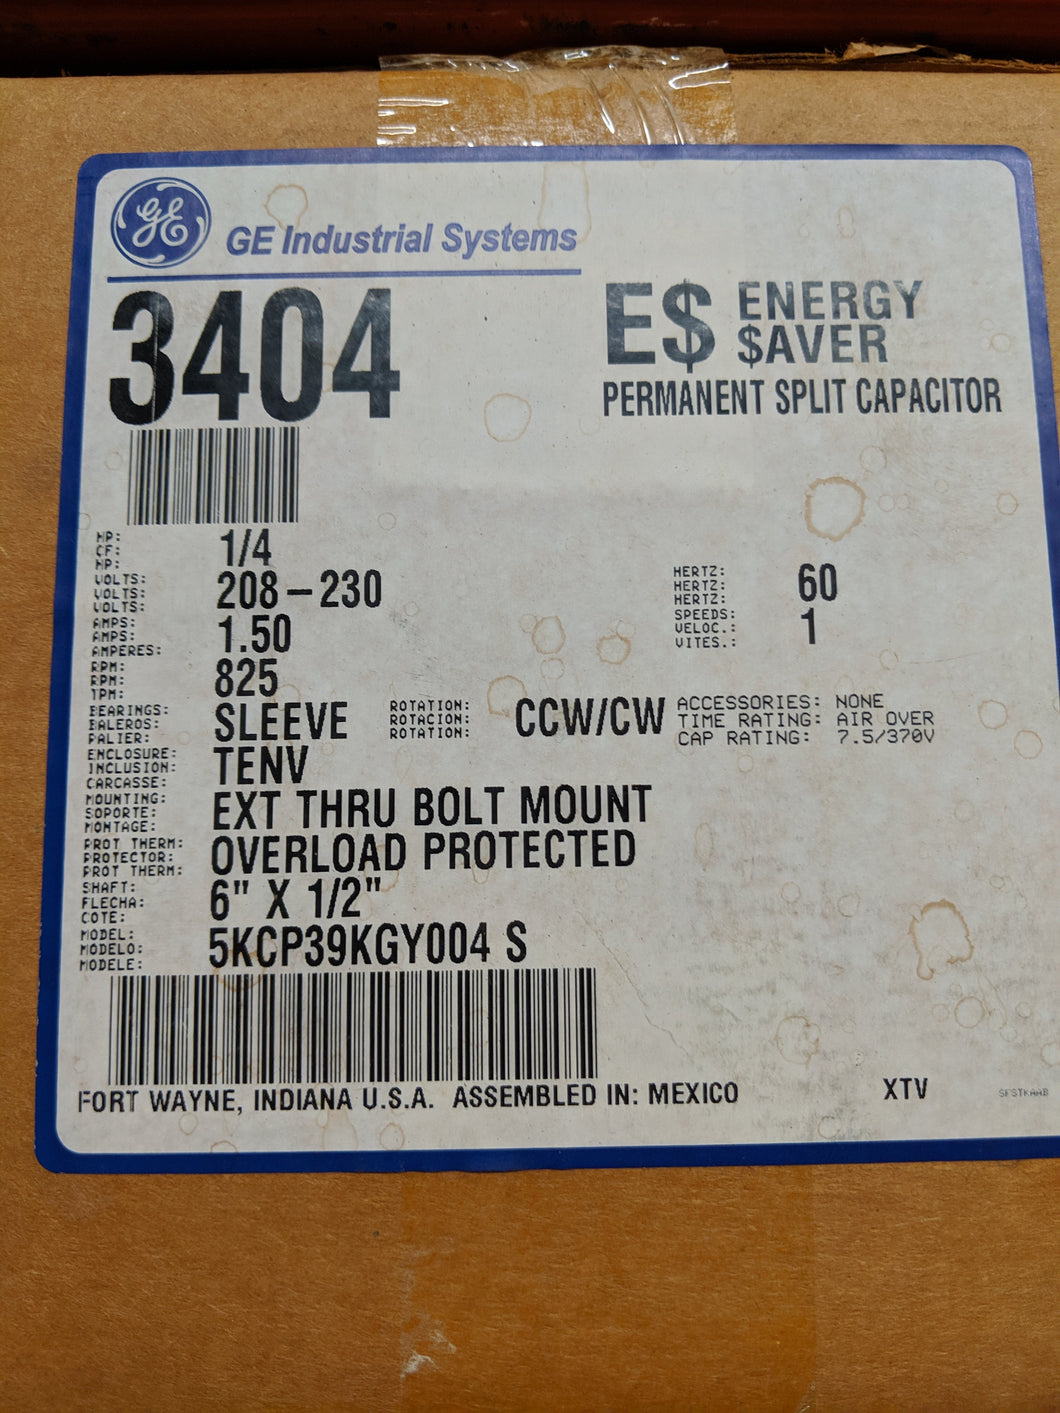 GE 3404, 1/4 HP, 208-230 Volts, 5KCP39KGY004S